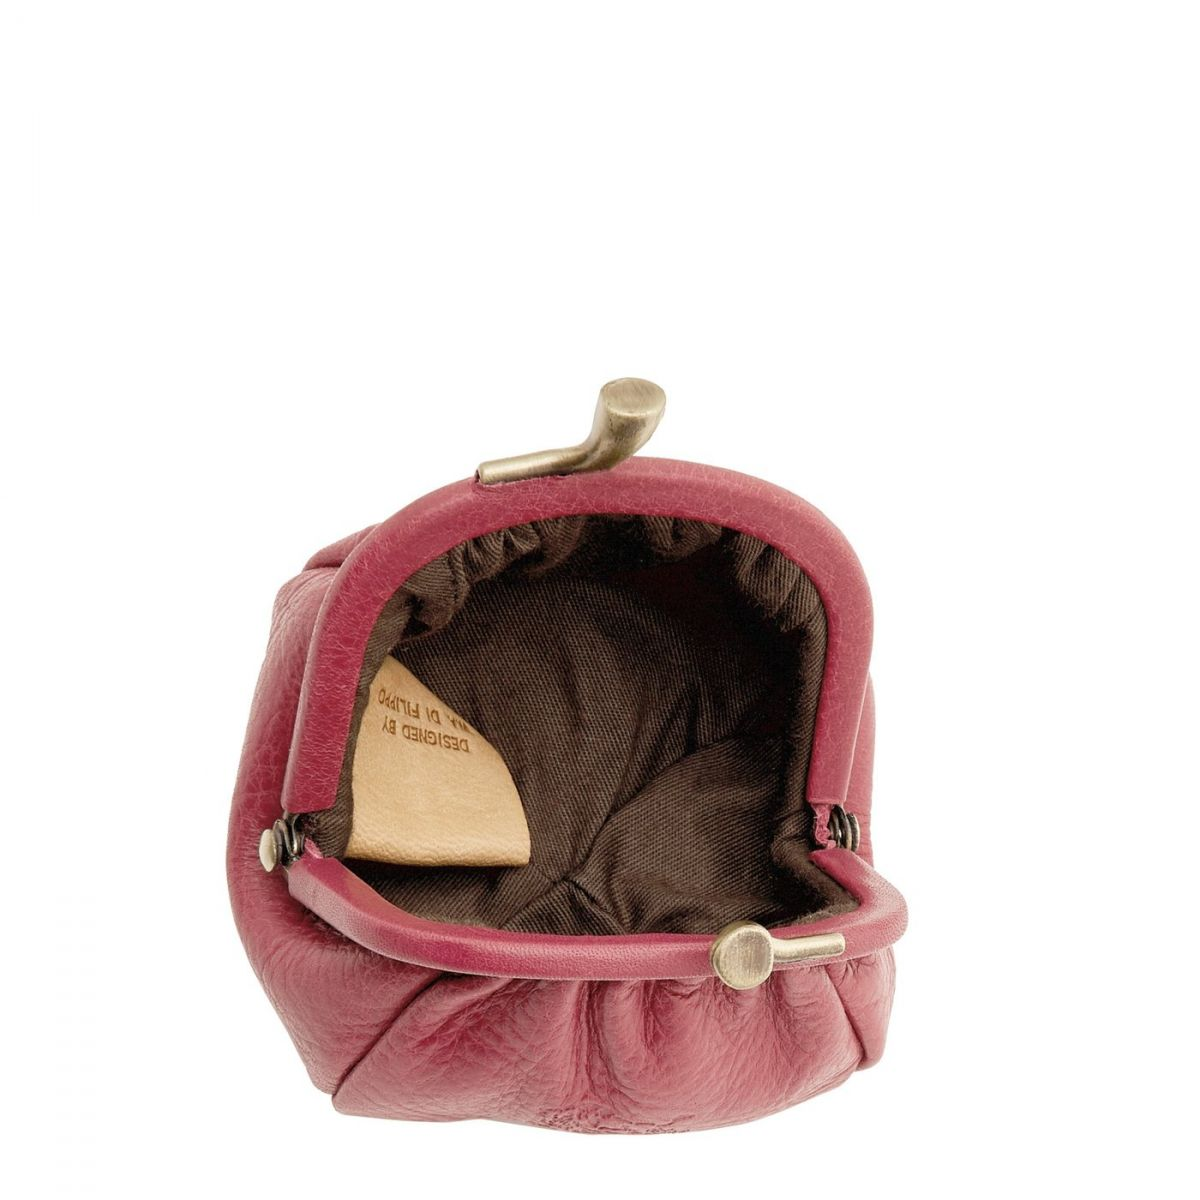 Women's Coin Purse in Cowhide Leather SCP016 color Sumac | Details